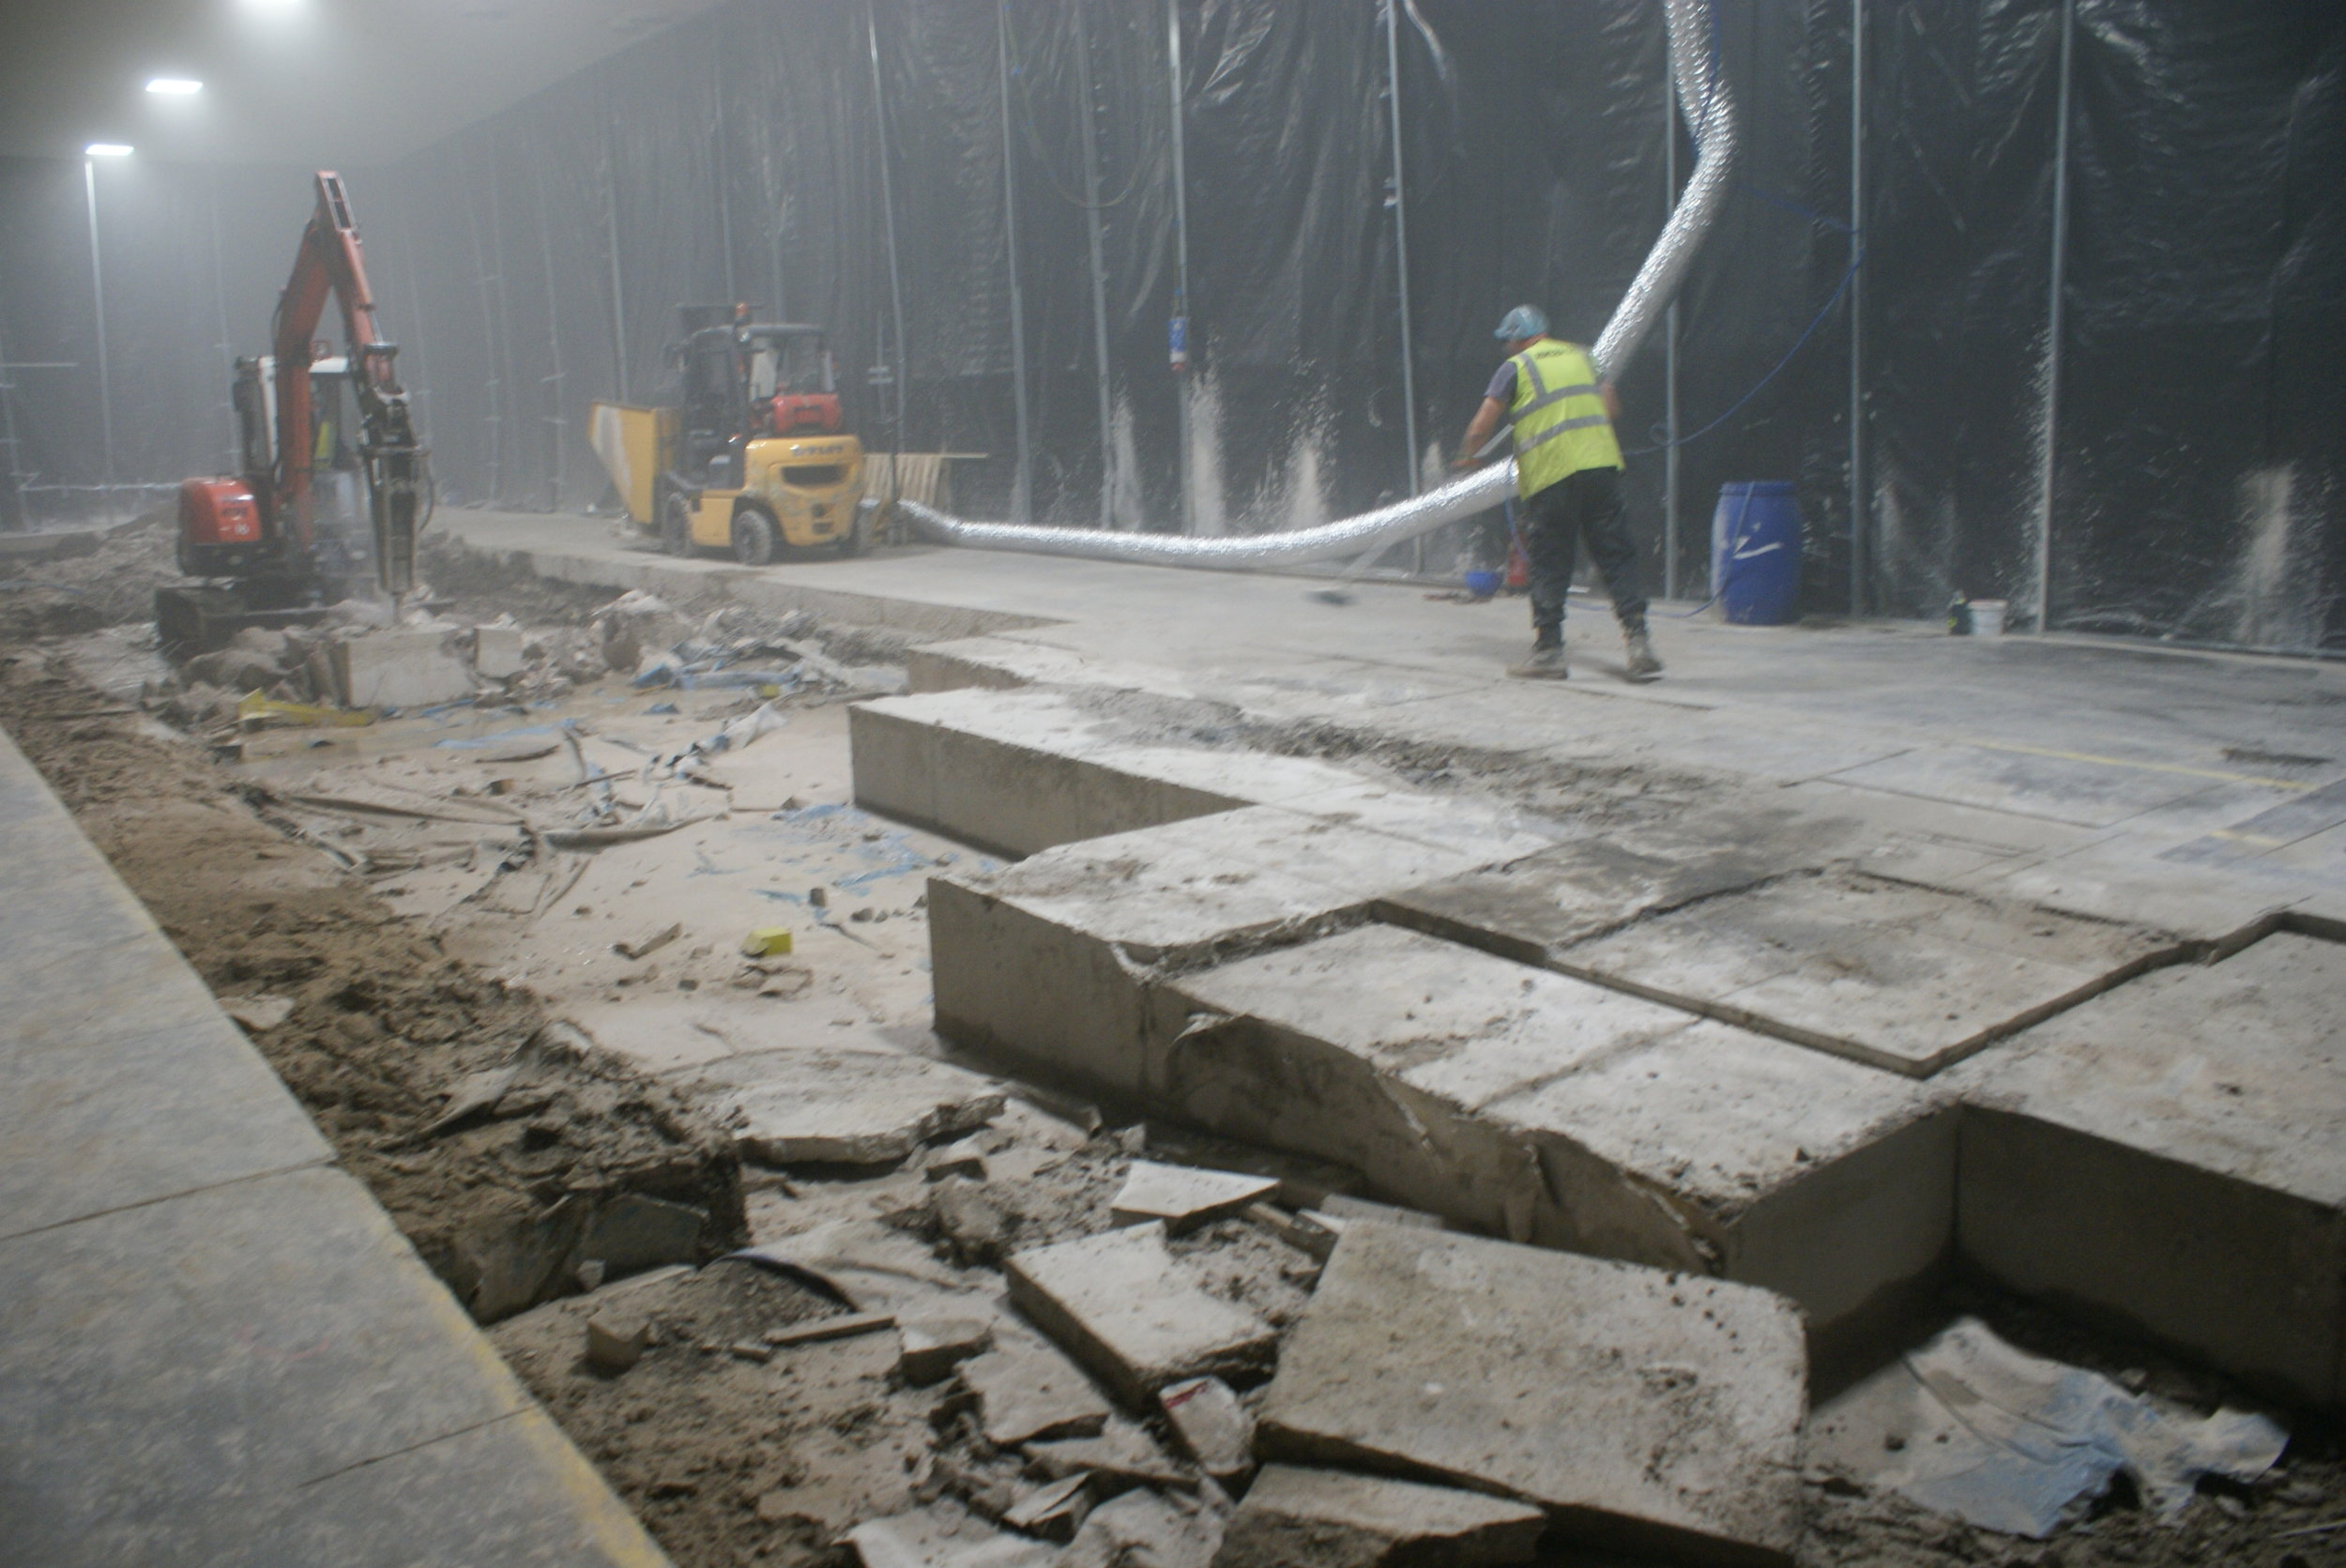 The concrete floor is cut into manageable blocks ready for removal.